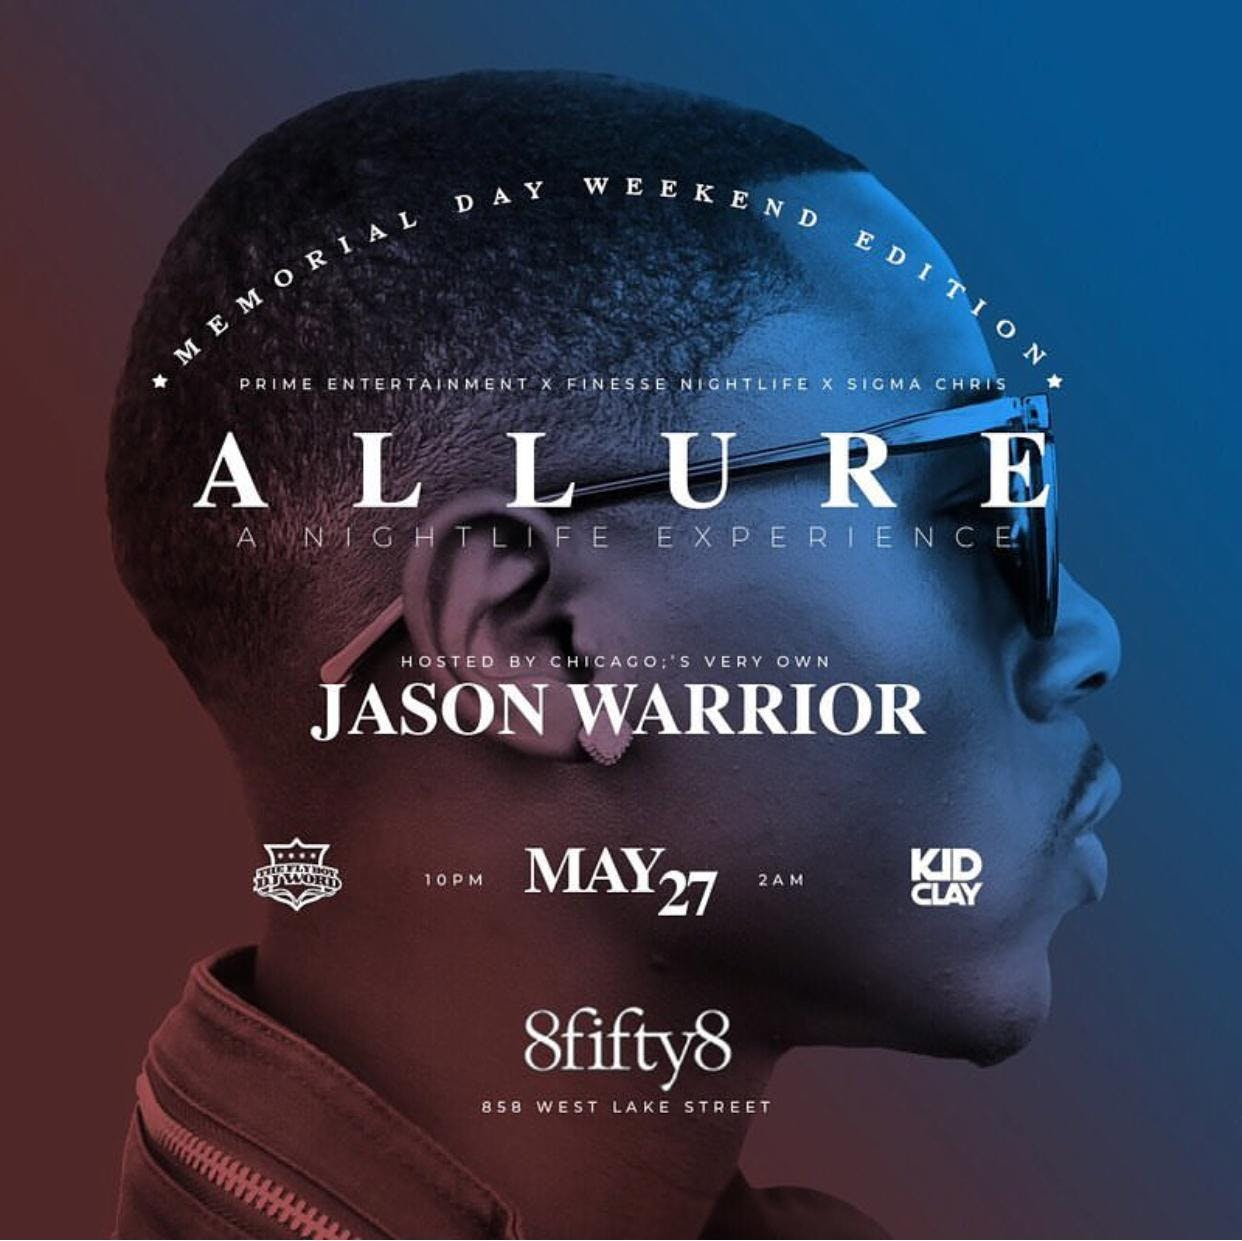 Allure: Nightlife Experience featuring Jason